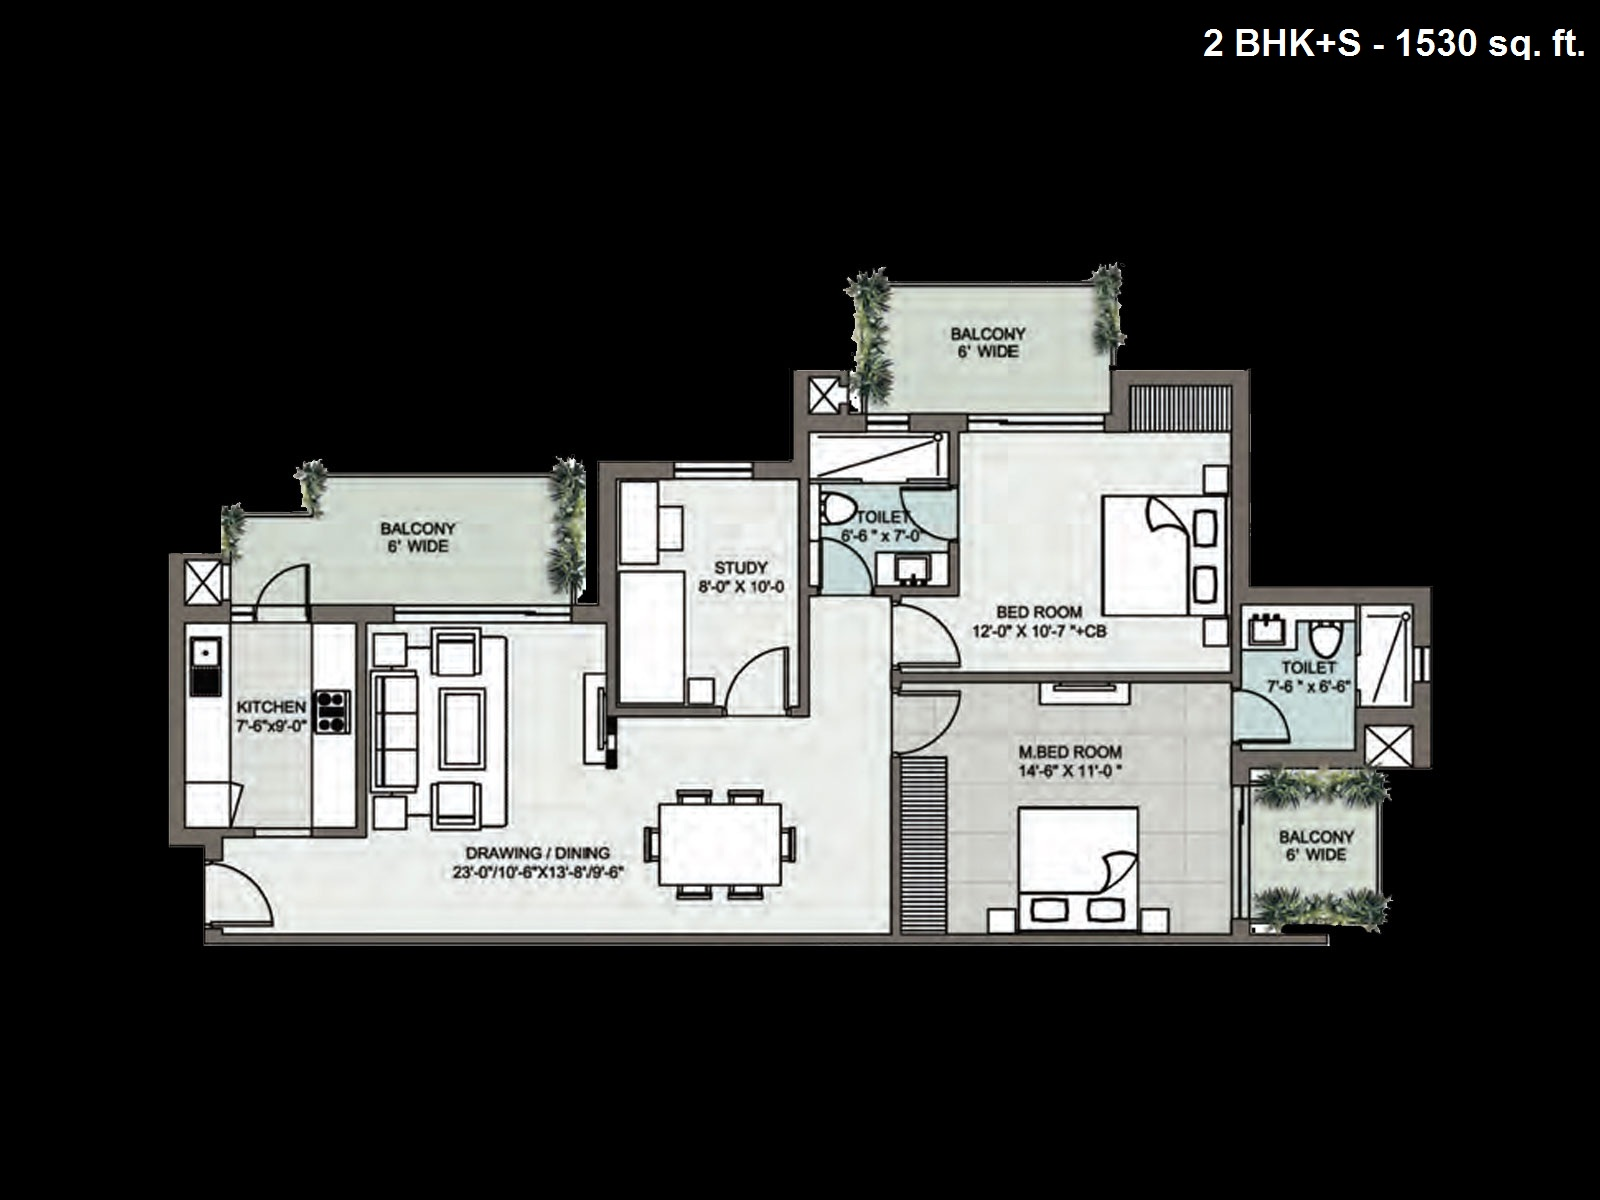 Supertech Araville floor plan 2bhk+S 1530